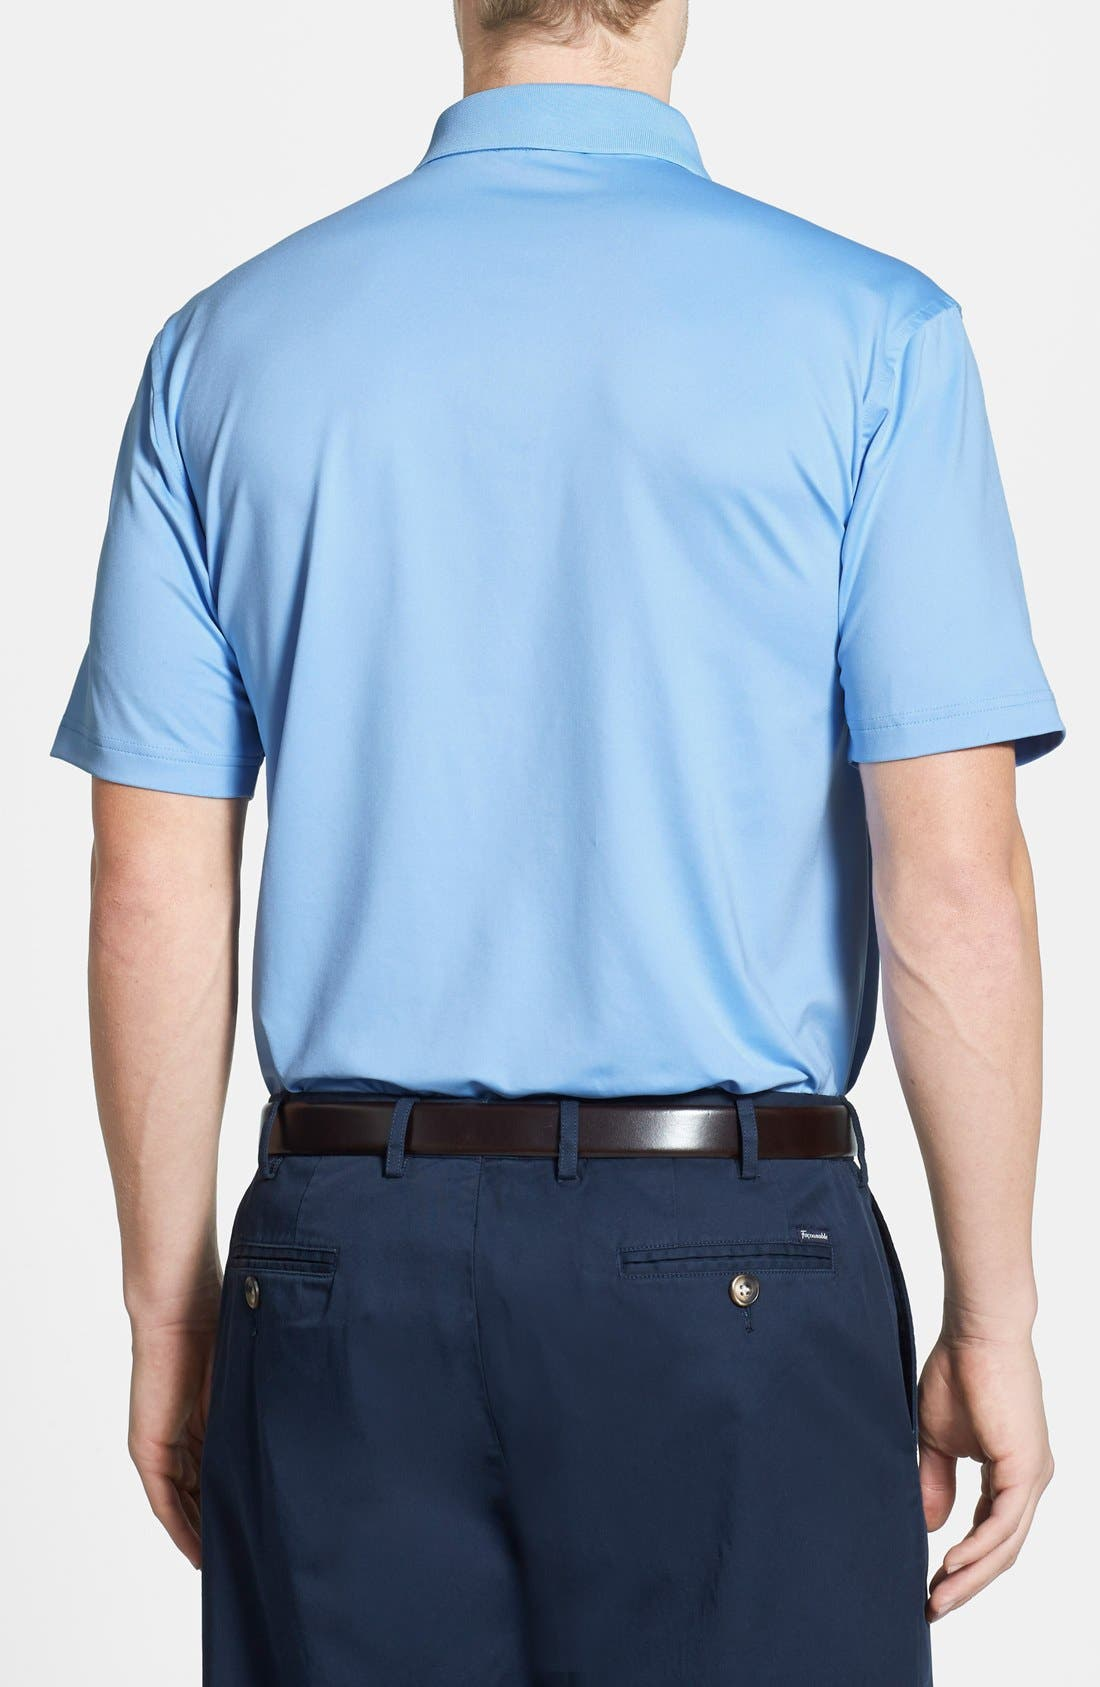 PETER MILLAR,                             Moisture Wicking Stretch Jersey Polo,                             Alternate thumbnail 2, color,                             400